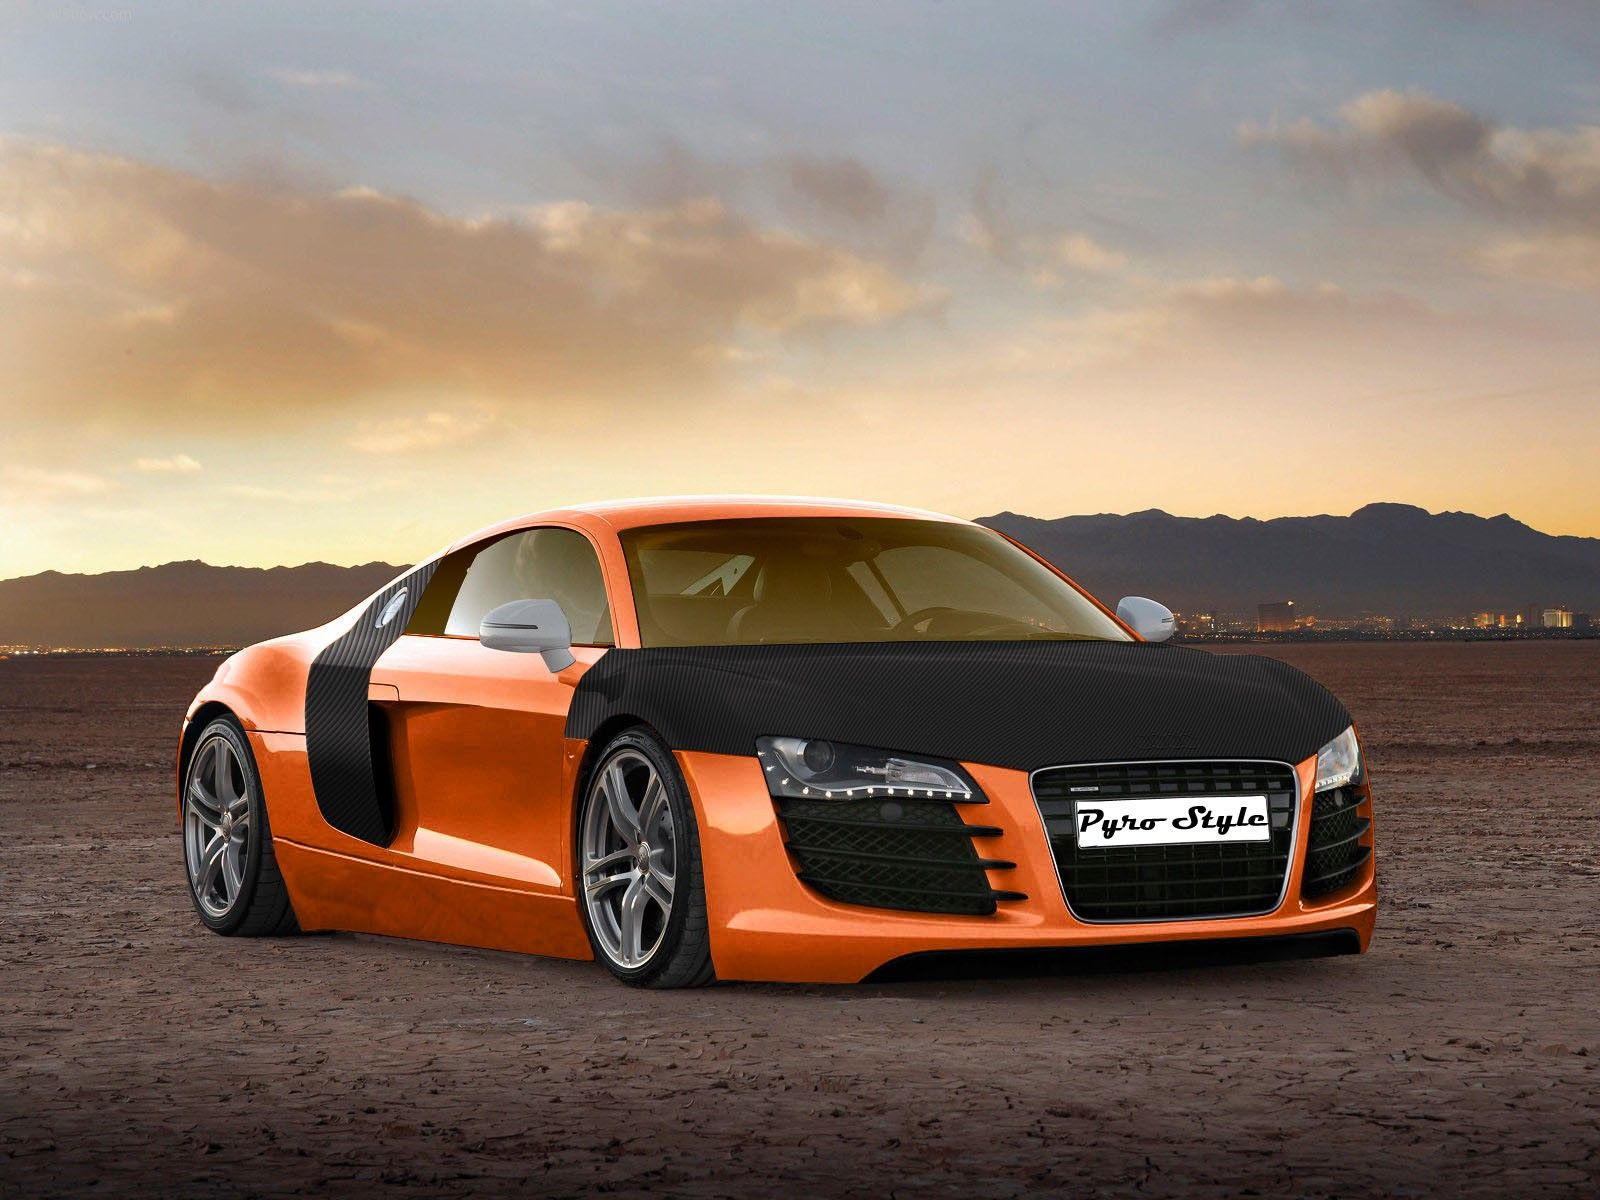 Audi R8 Gt Wallpapers In Hd Gallery Hd Car Wallpaper Audi